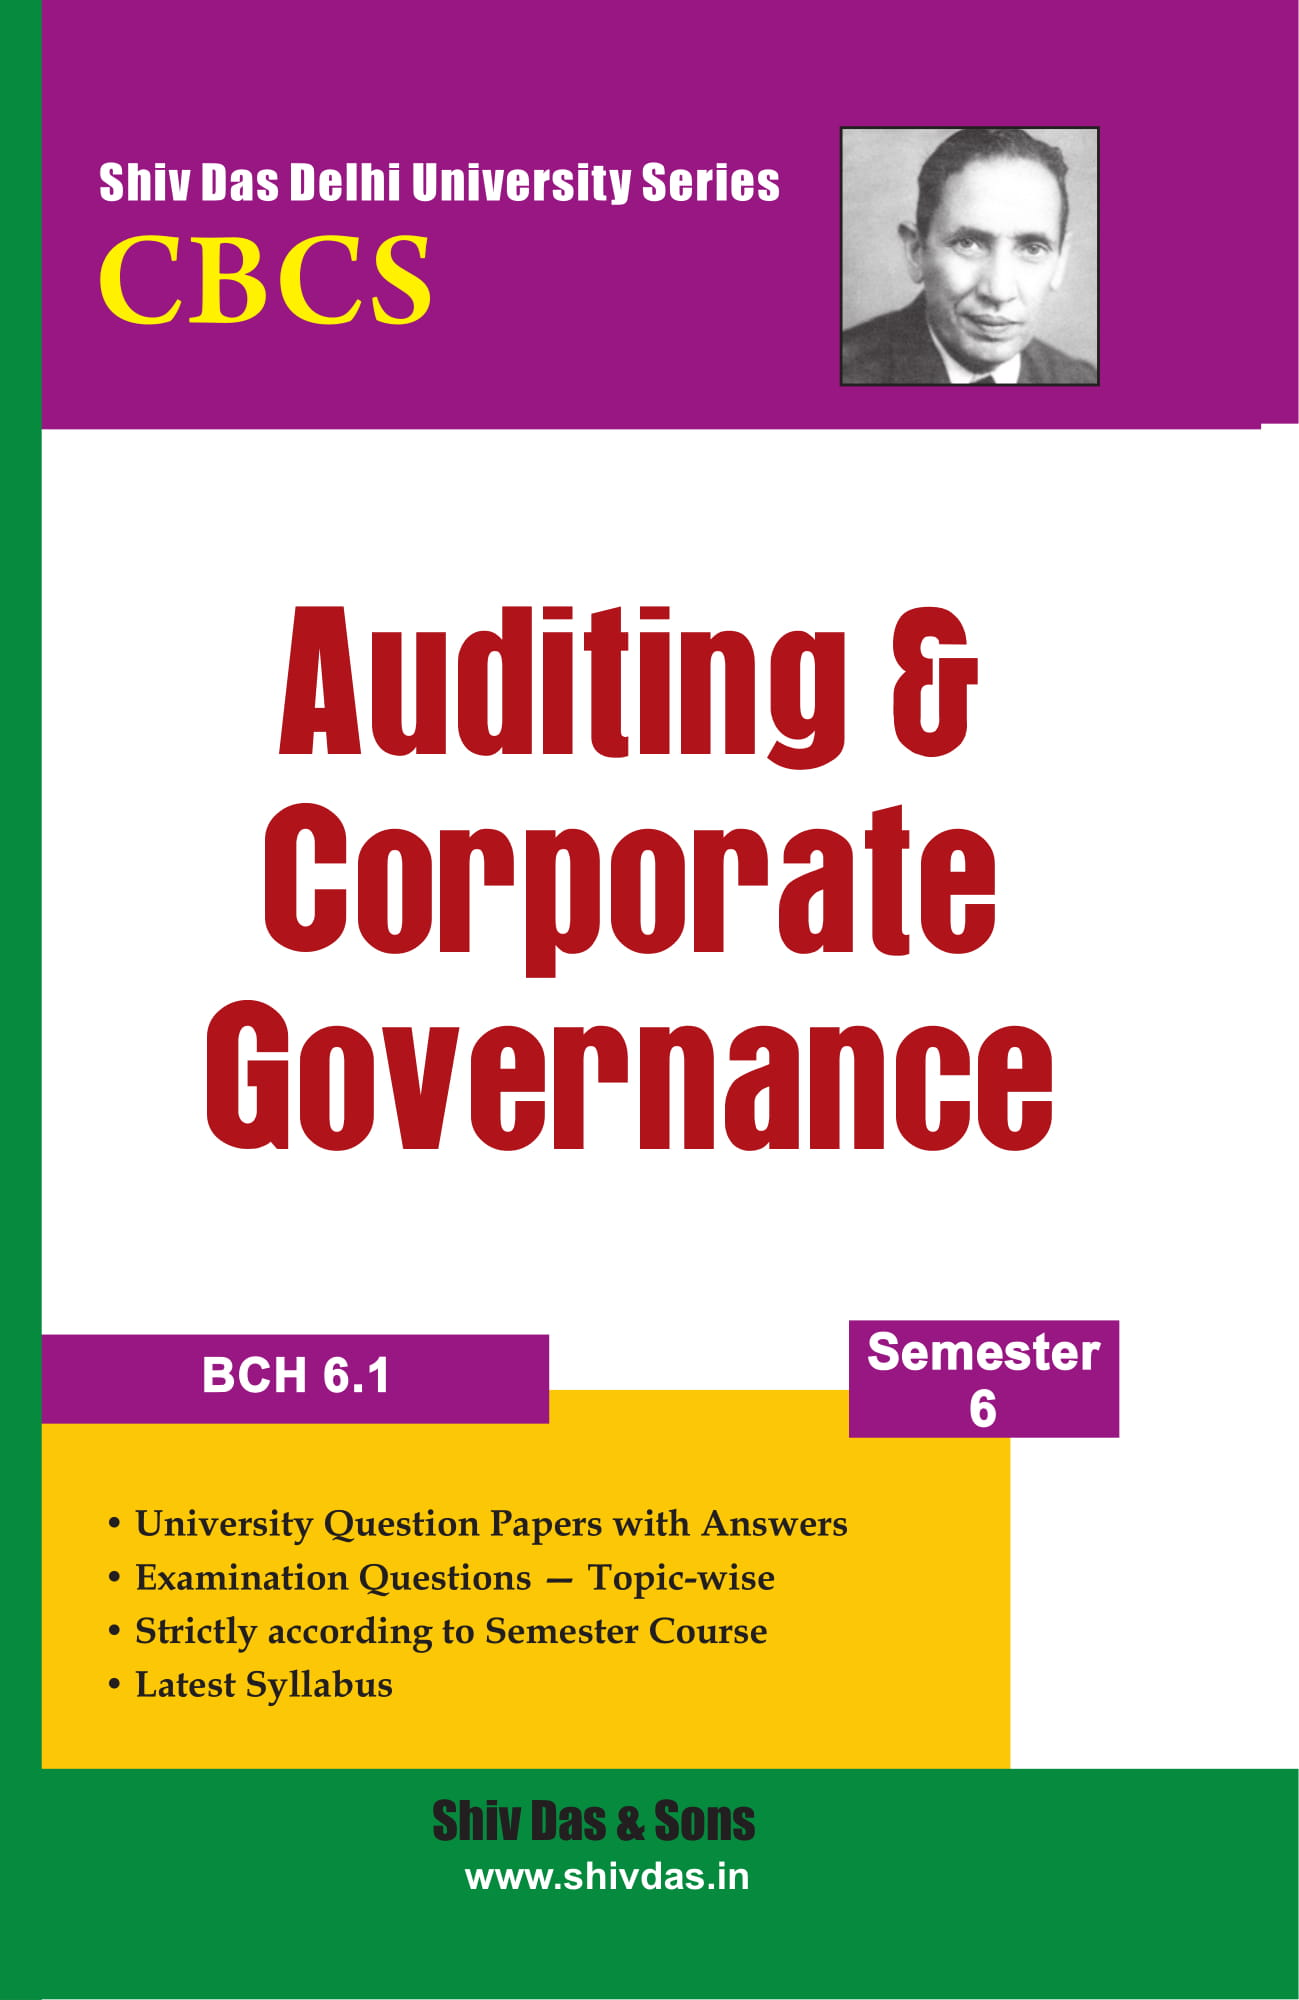 Auditing & Corporate Governance for B.Com Hons Semester 6